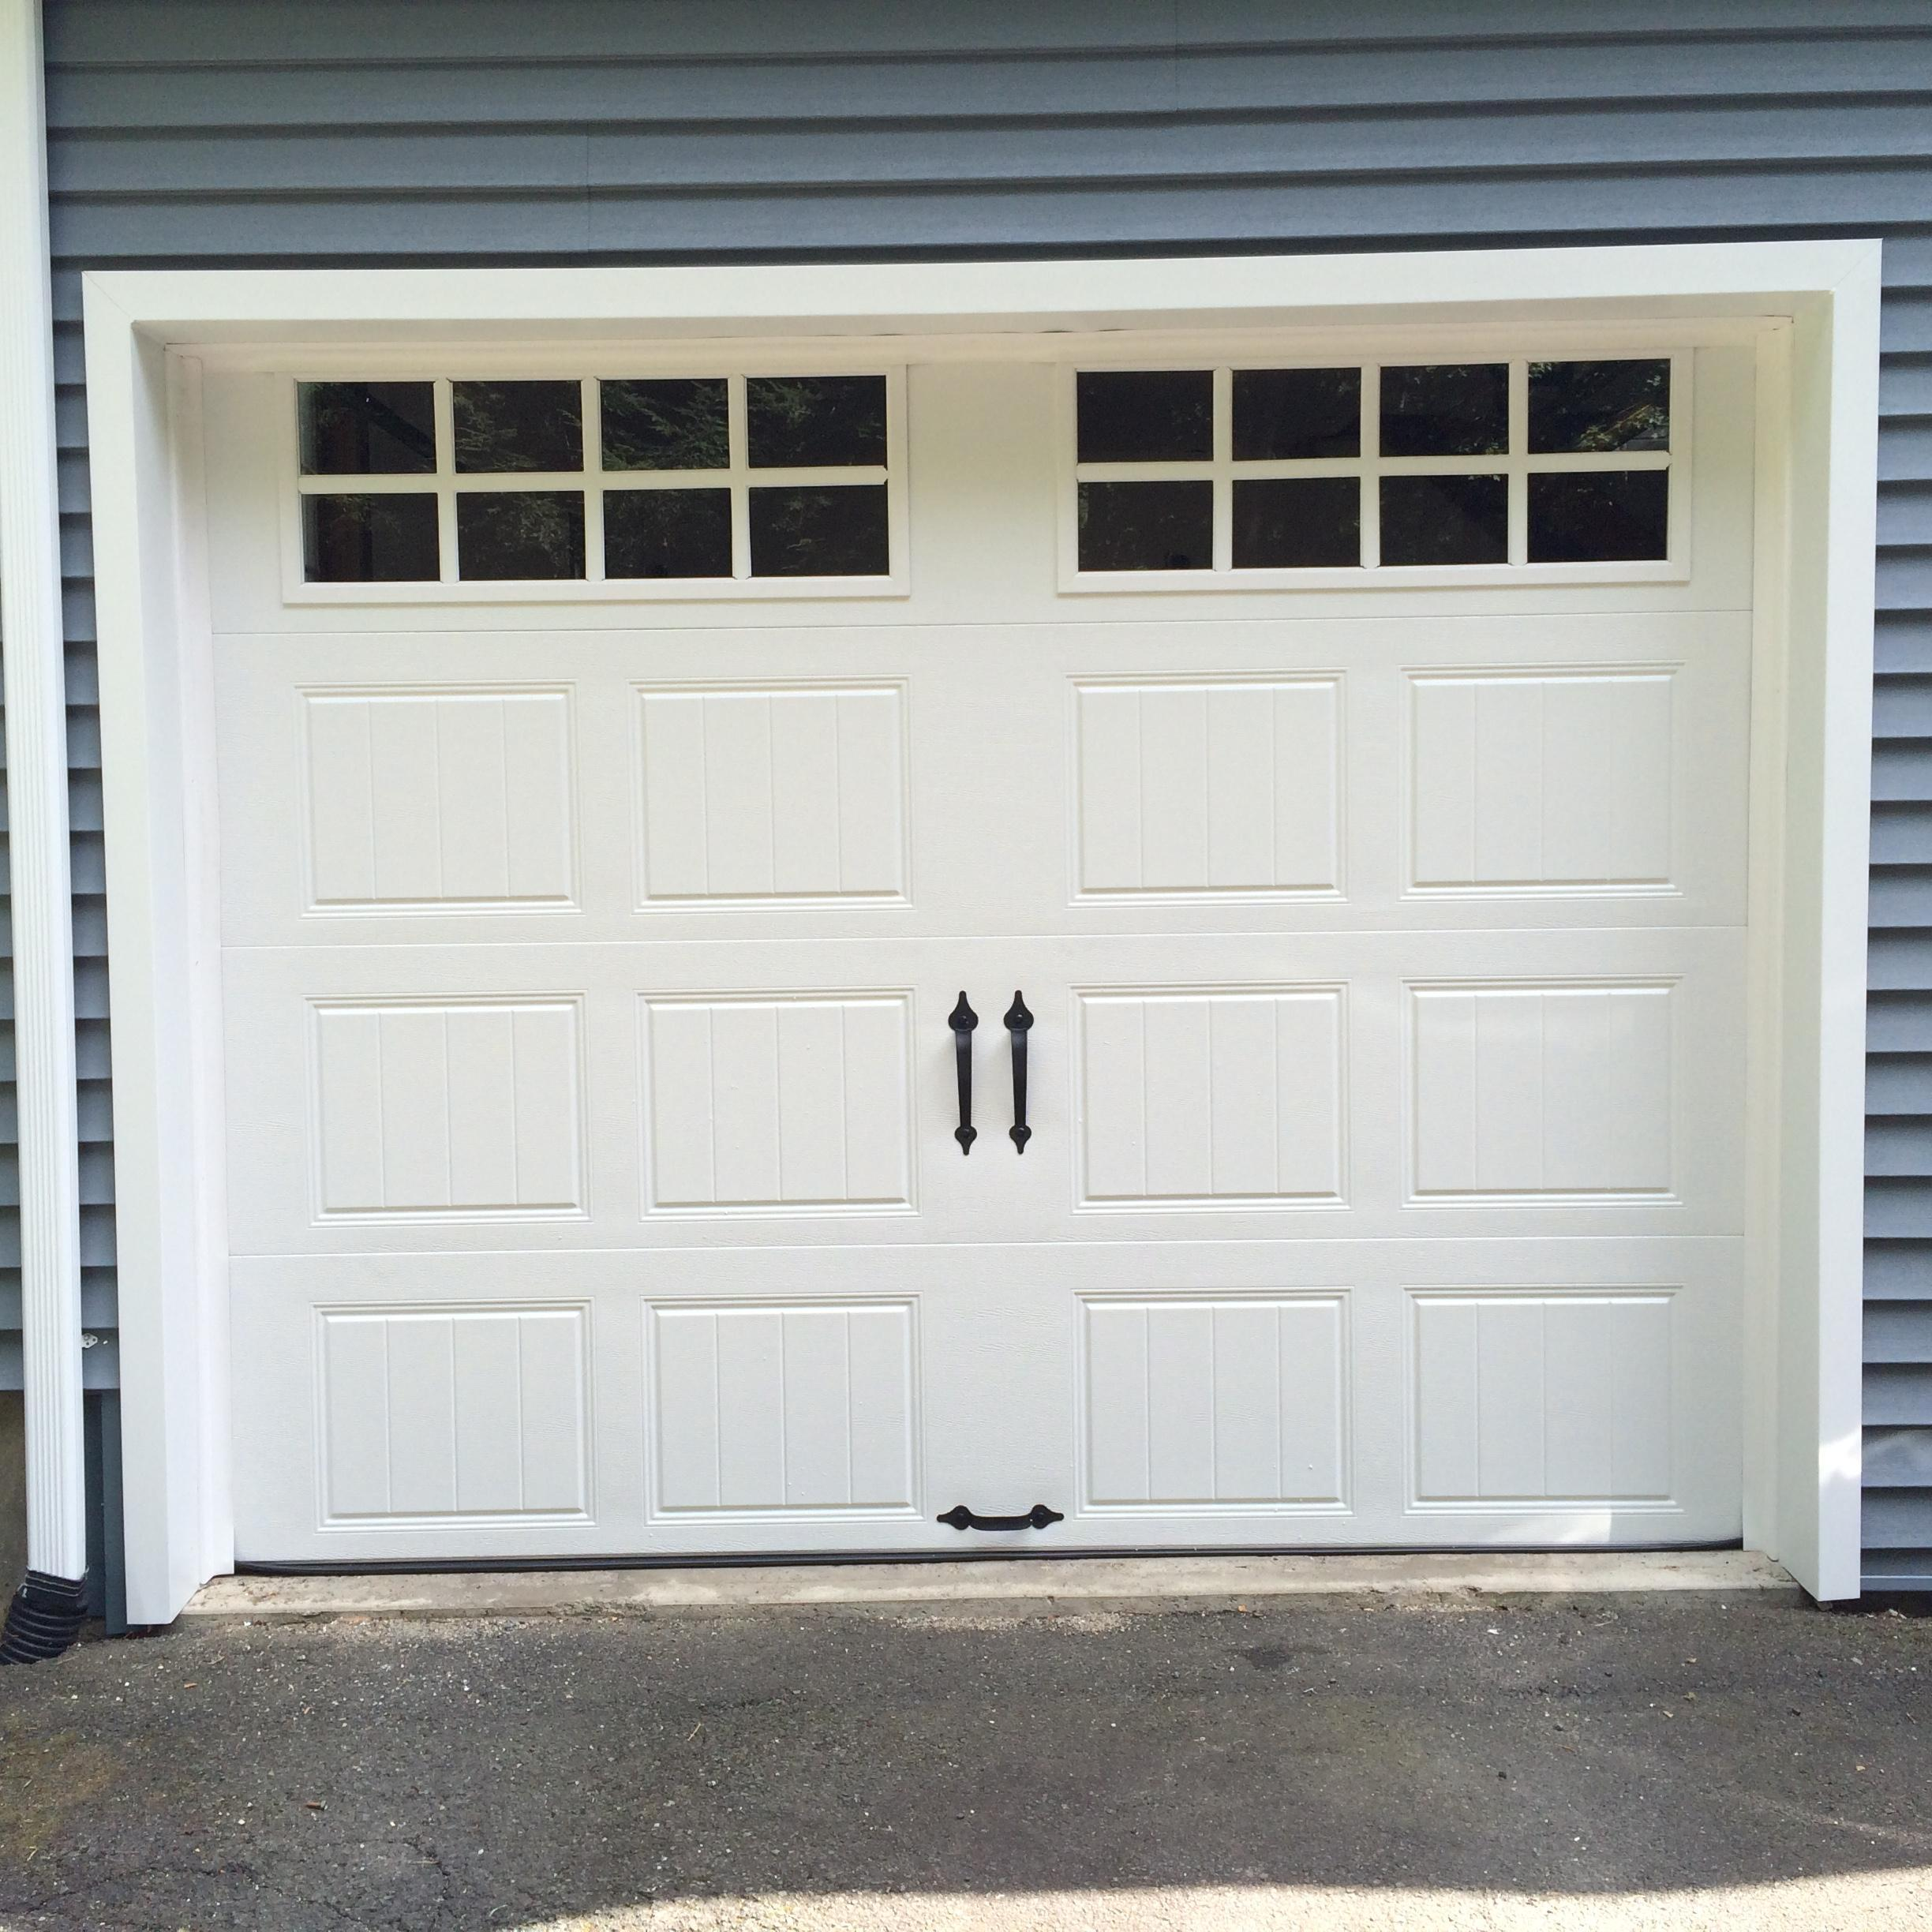 2448 #526479 Overhead Doors Solutions In West Haven CT 06516 ChamberofCommerce  image Overhead Garage Doors Residential Reviews 37132448